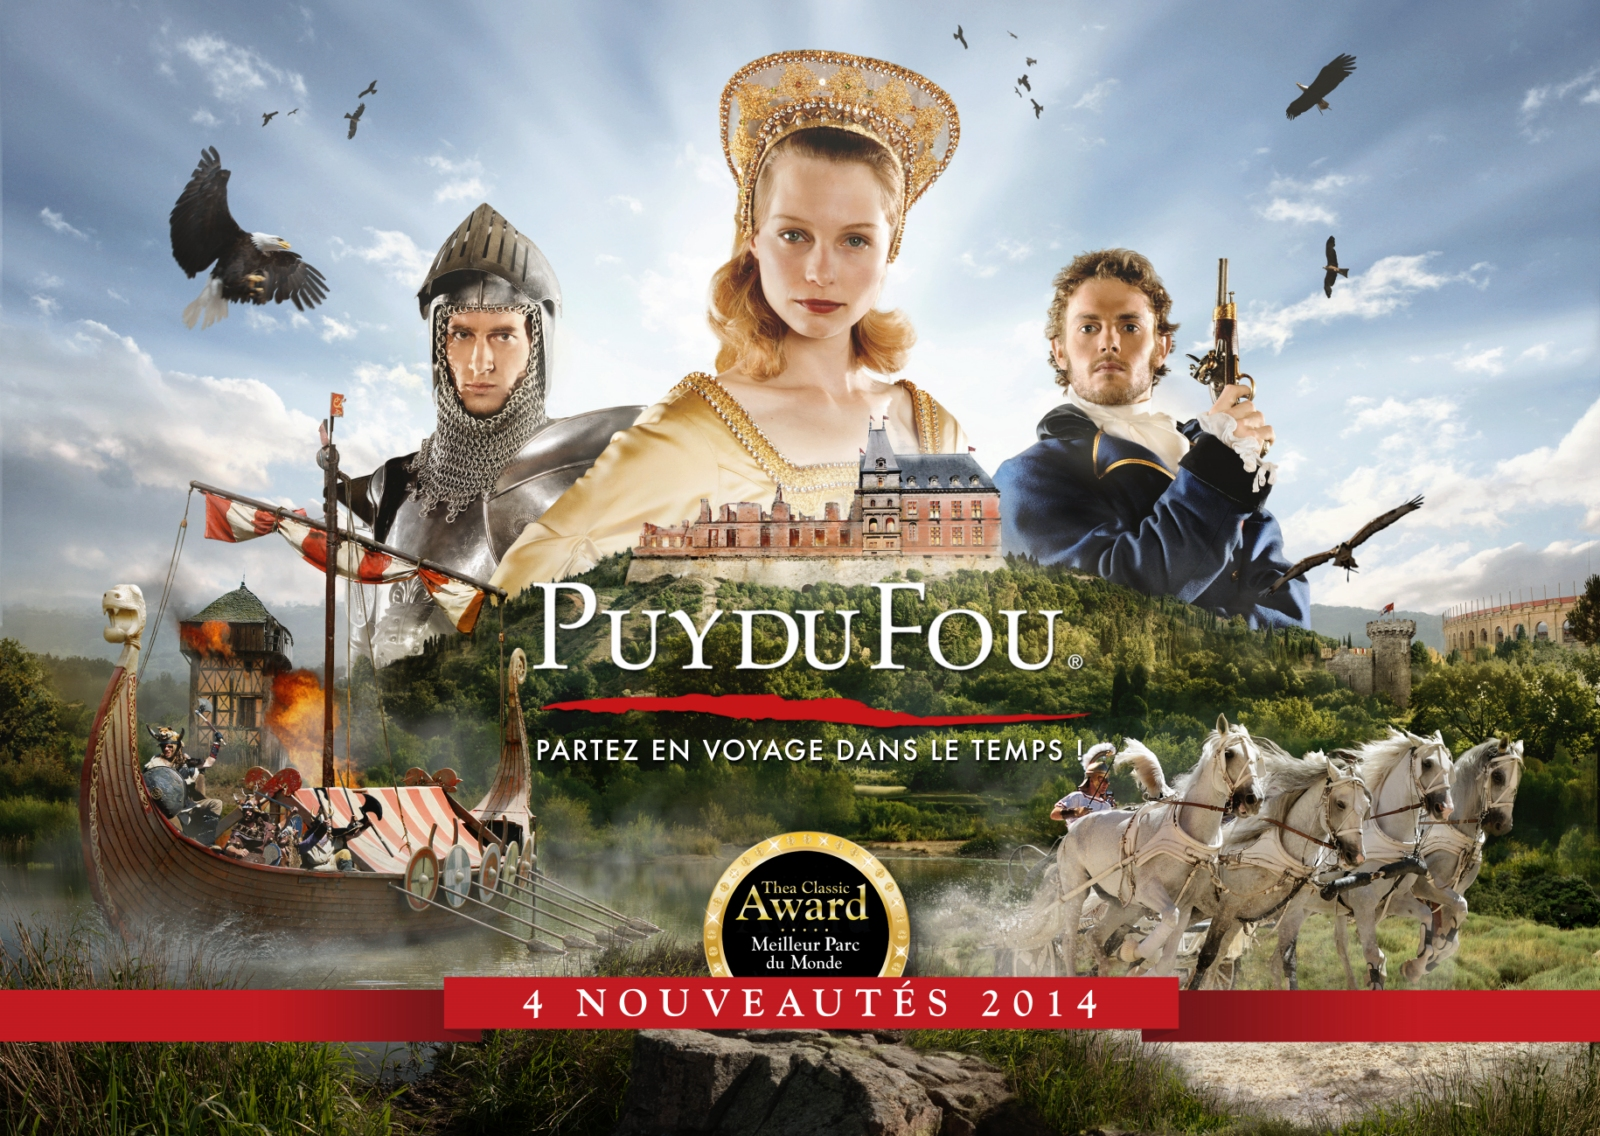 Parcs d'attraction, le Puy du Fou premier français